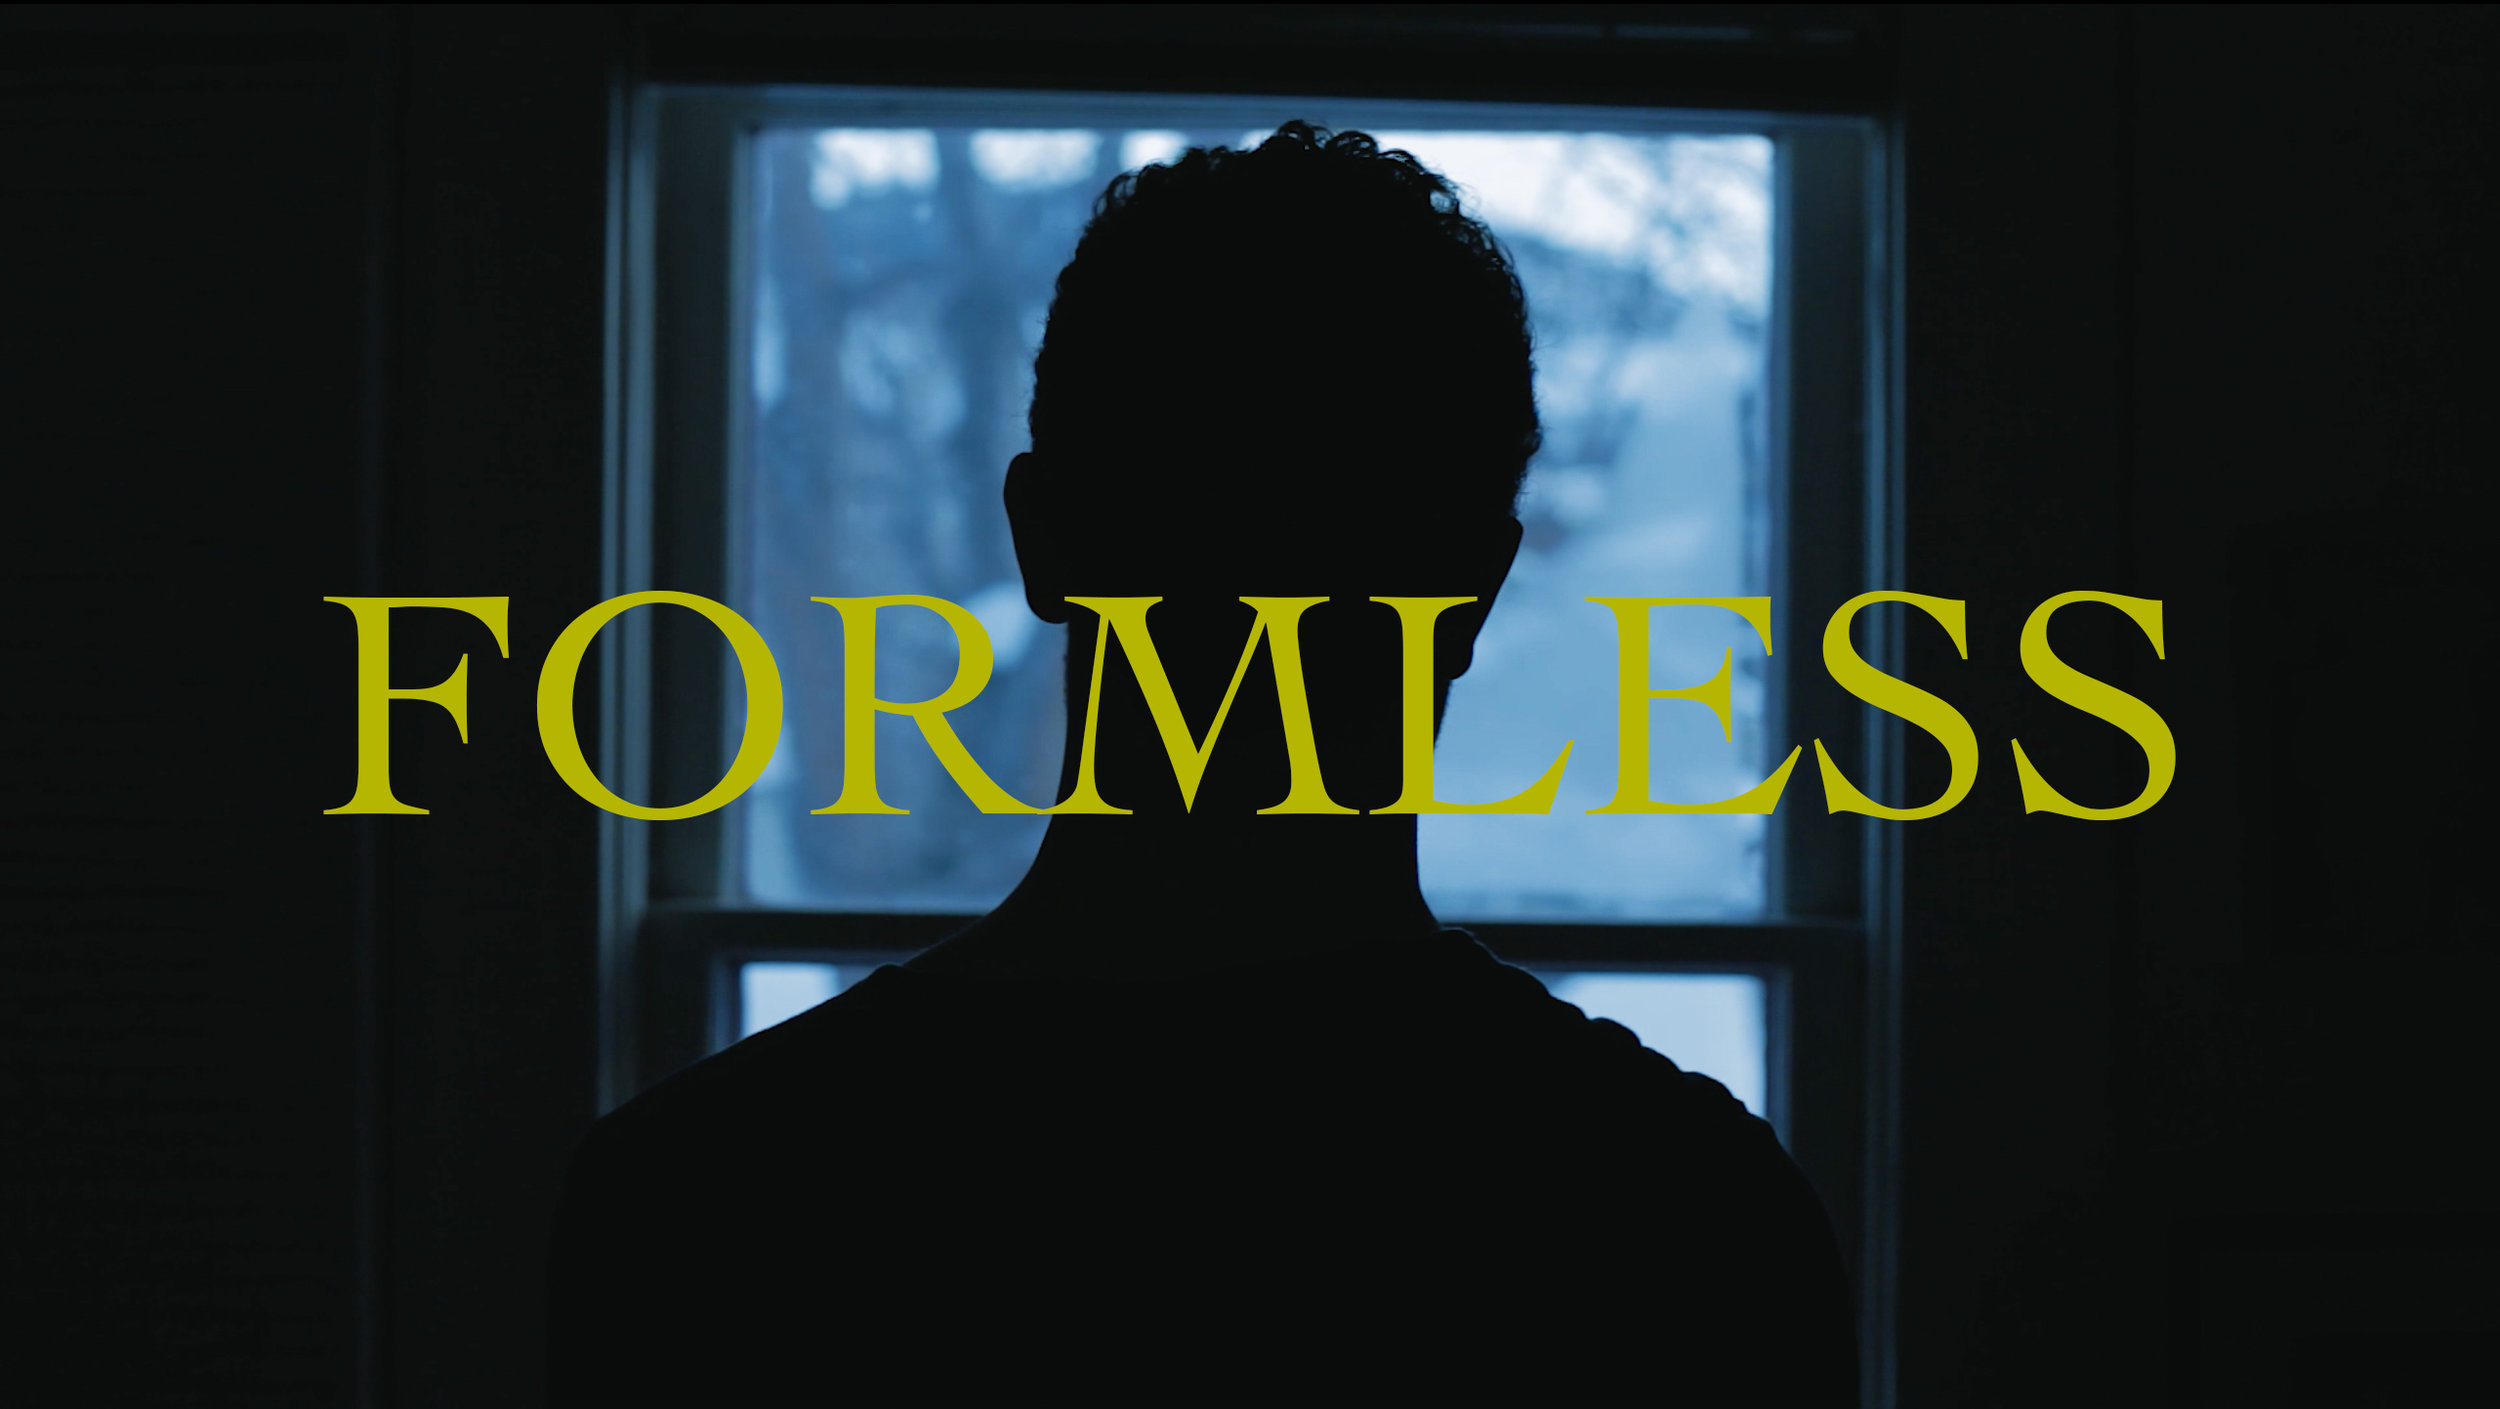 Formless (2018)